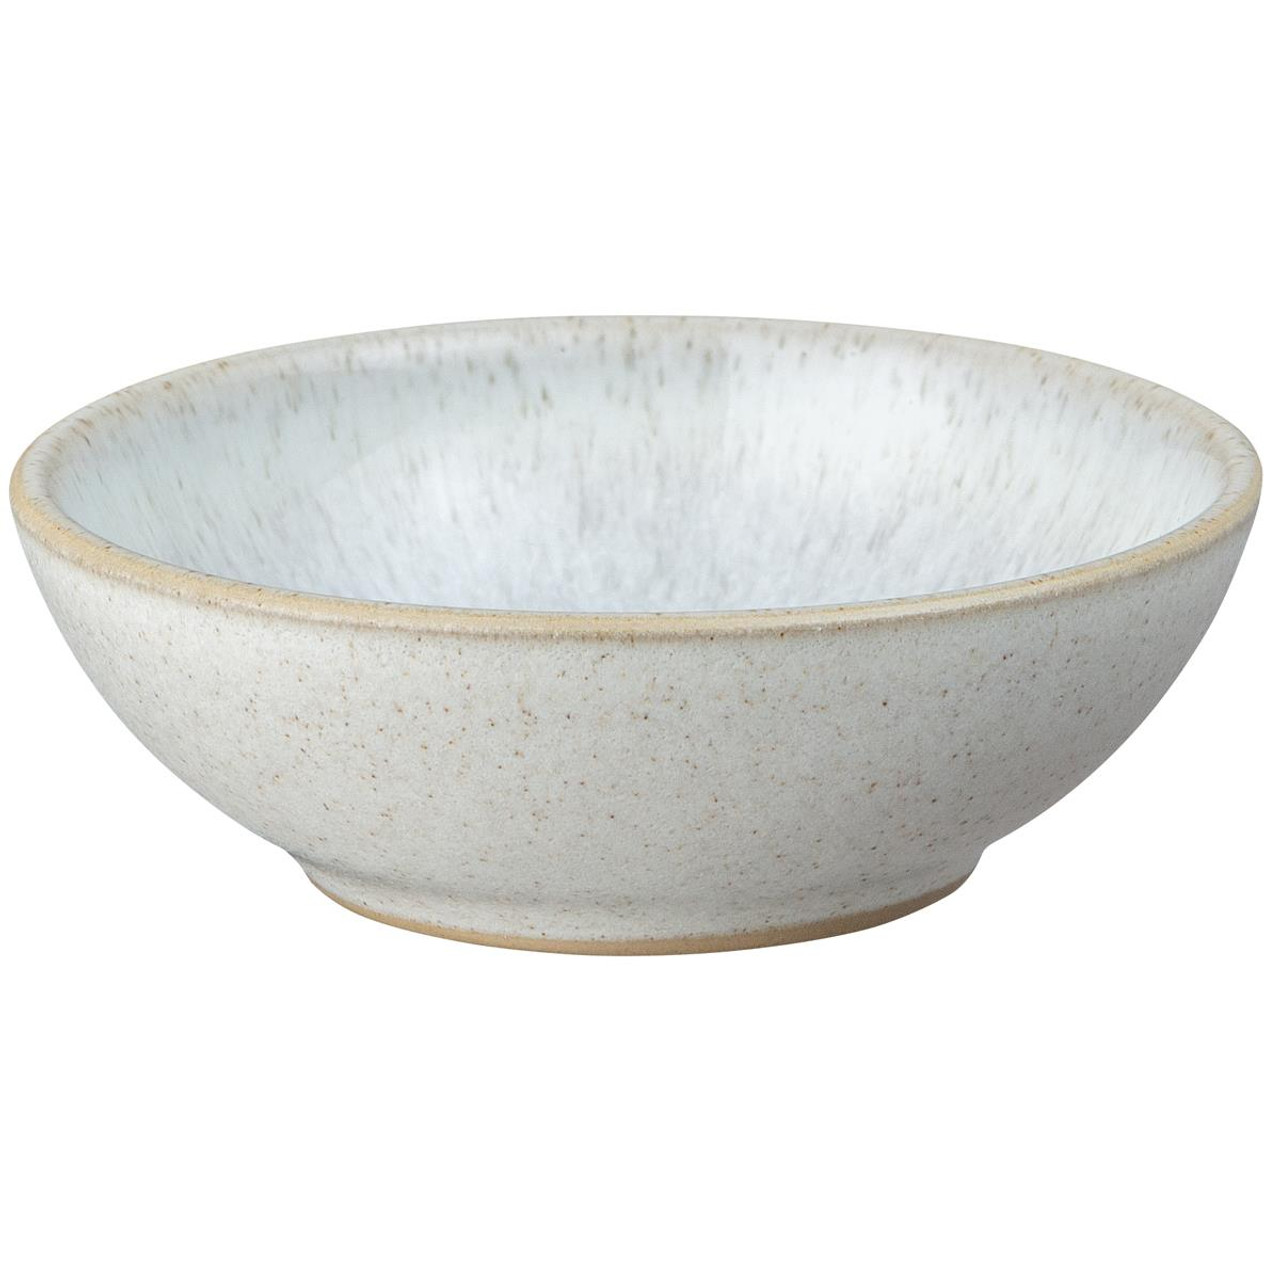 Denby Modus Speckle Extra Small Round Dish